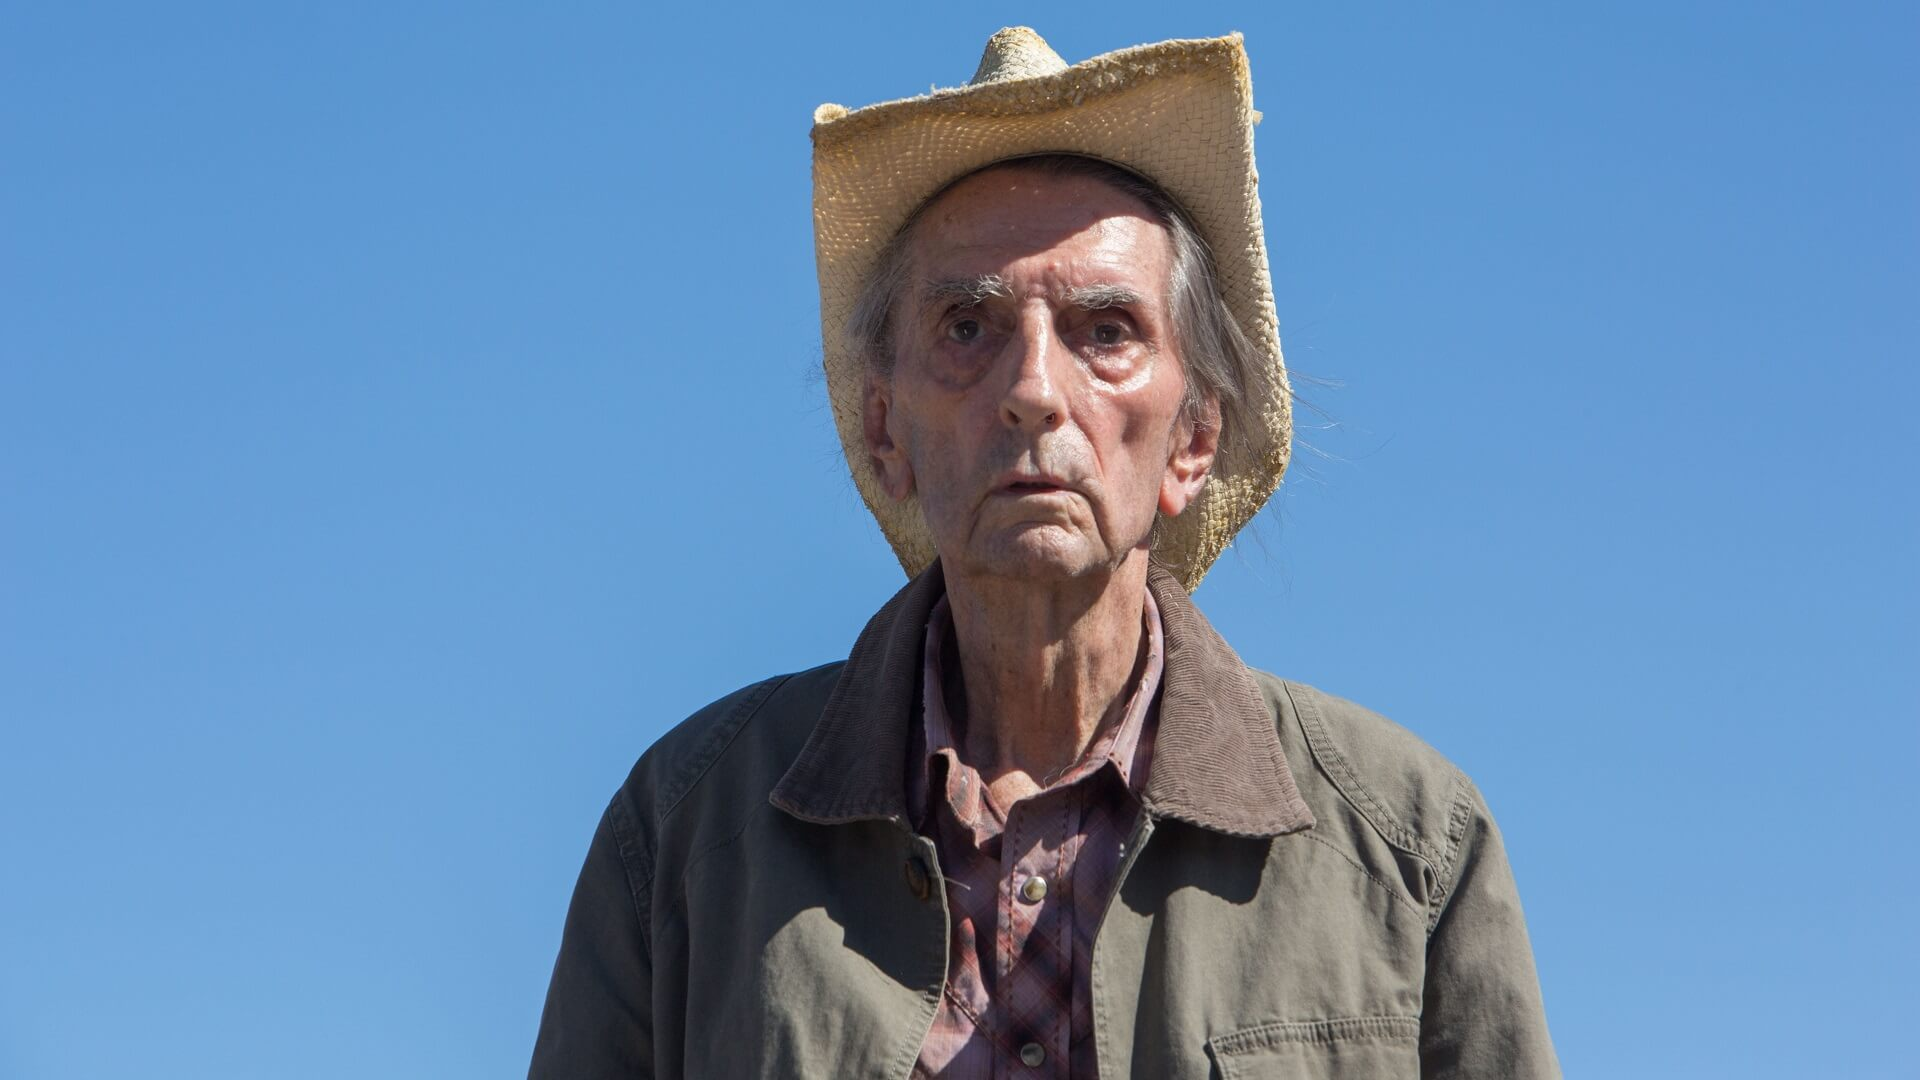 Lucky: recensione del film con Harry Dean Stanton